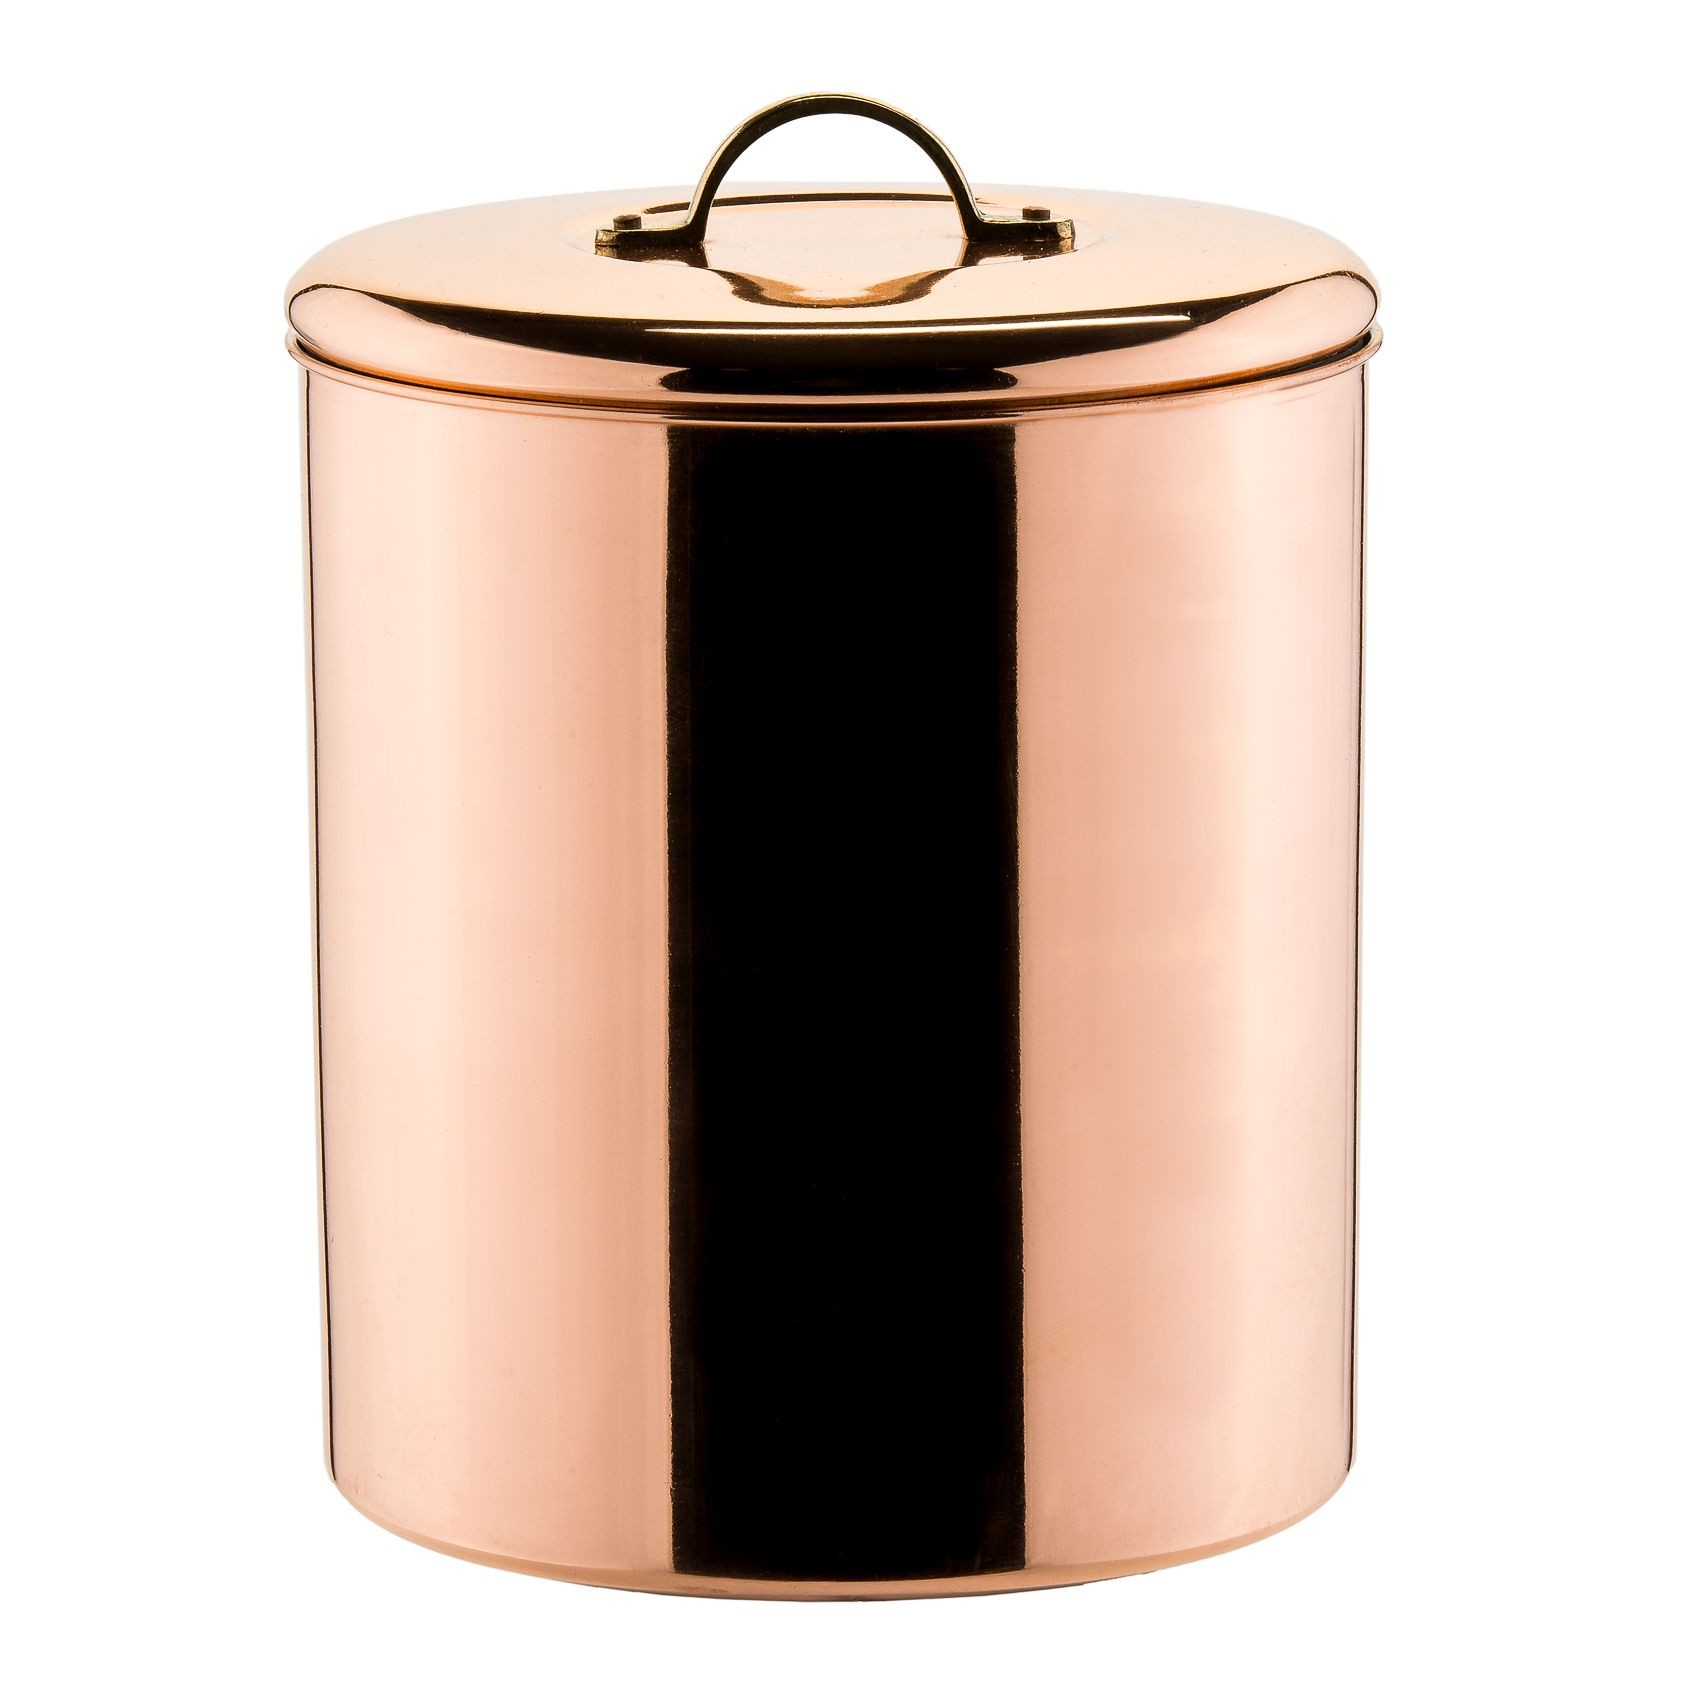 Old Dutch International 1244 Polished Copper Cookie Jar with Fresh Seal Cover, 4 Qt.